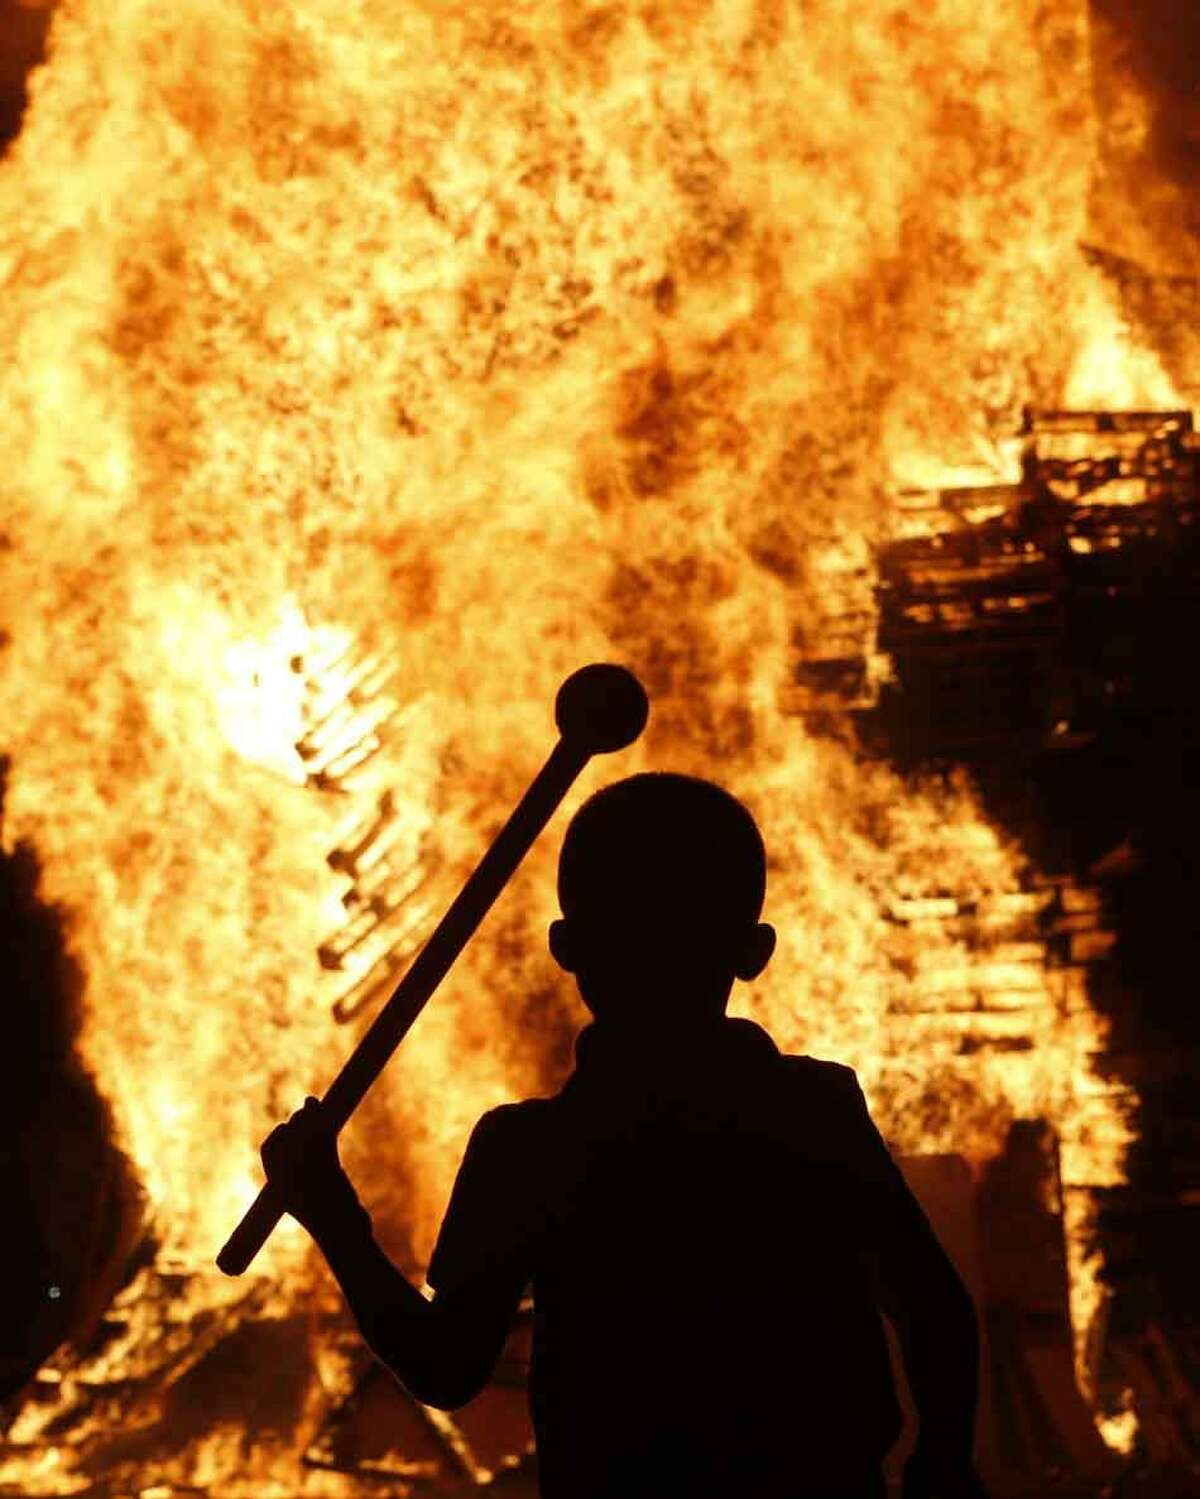 A boy watches a bonfire in the Protestant Sandy Row area of Belfast, Northern Ireland, Thursday, July 11, 2013. Hundreds of fires were set alight Thursday as loyalists celebrate The Twelfth, the holiday remembering the defeat of the Catholic King James, by the Protestant William of Orange in 1690. (AP Photo/Peter Morrison)